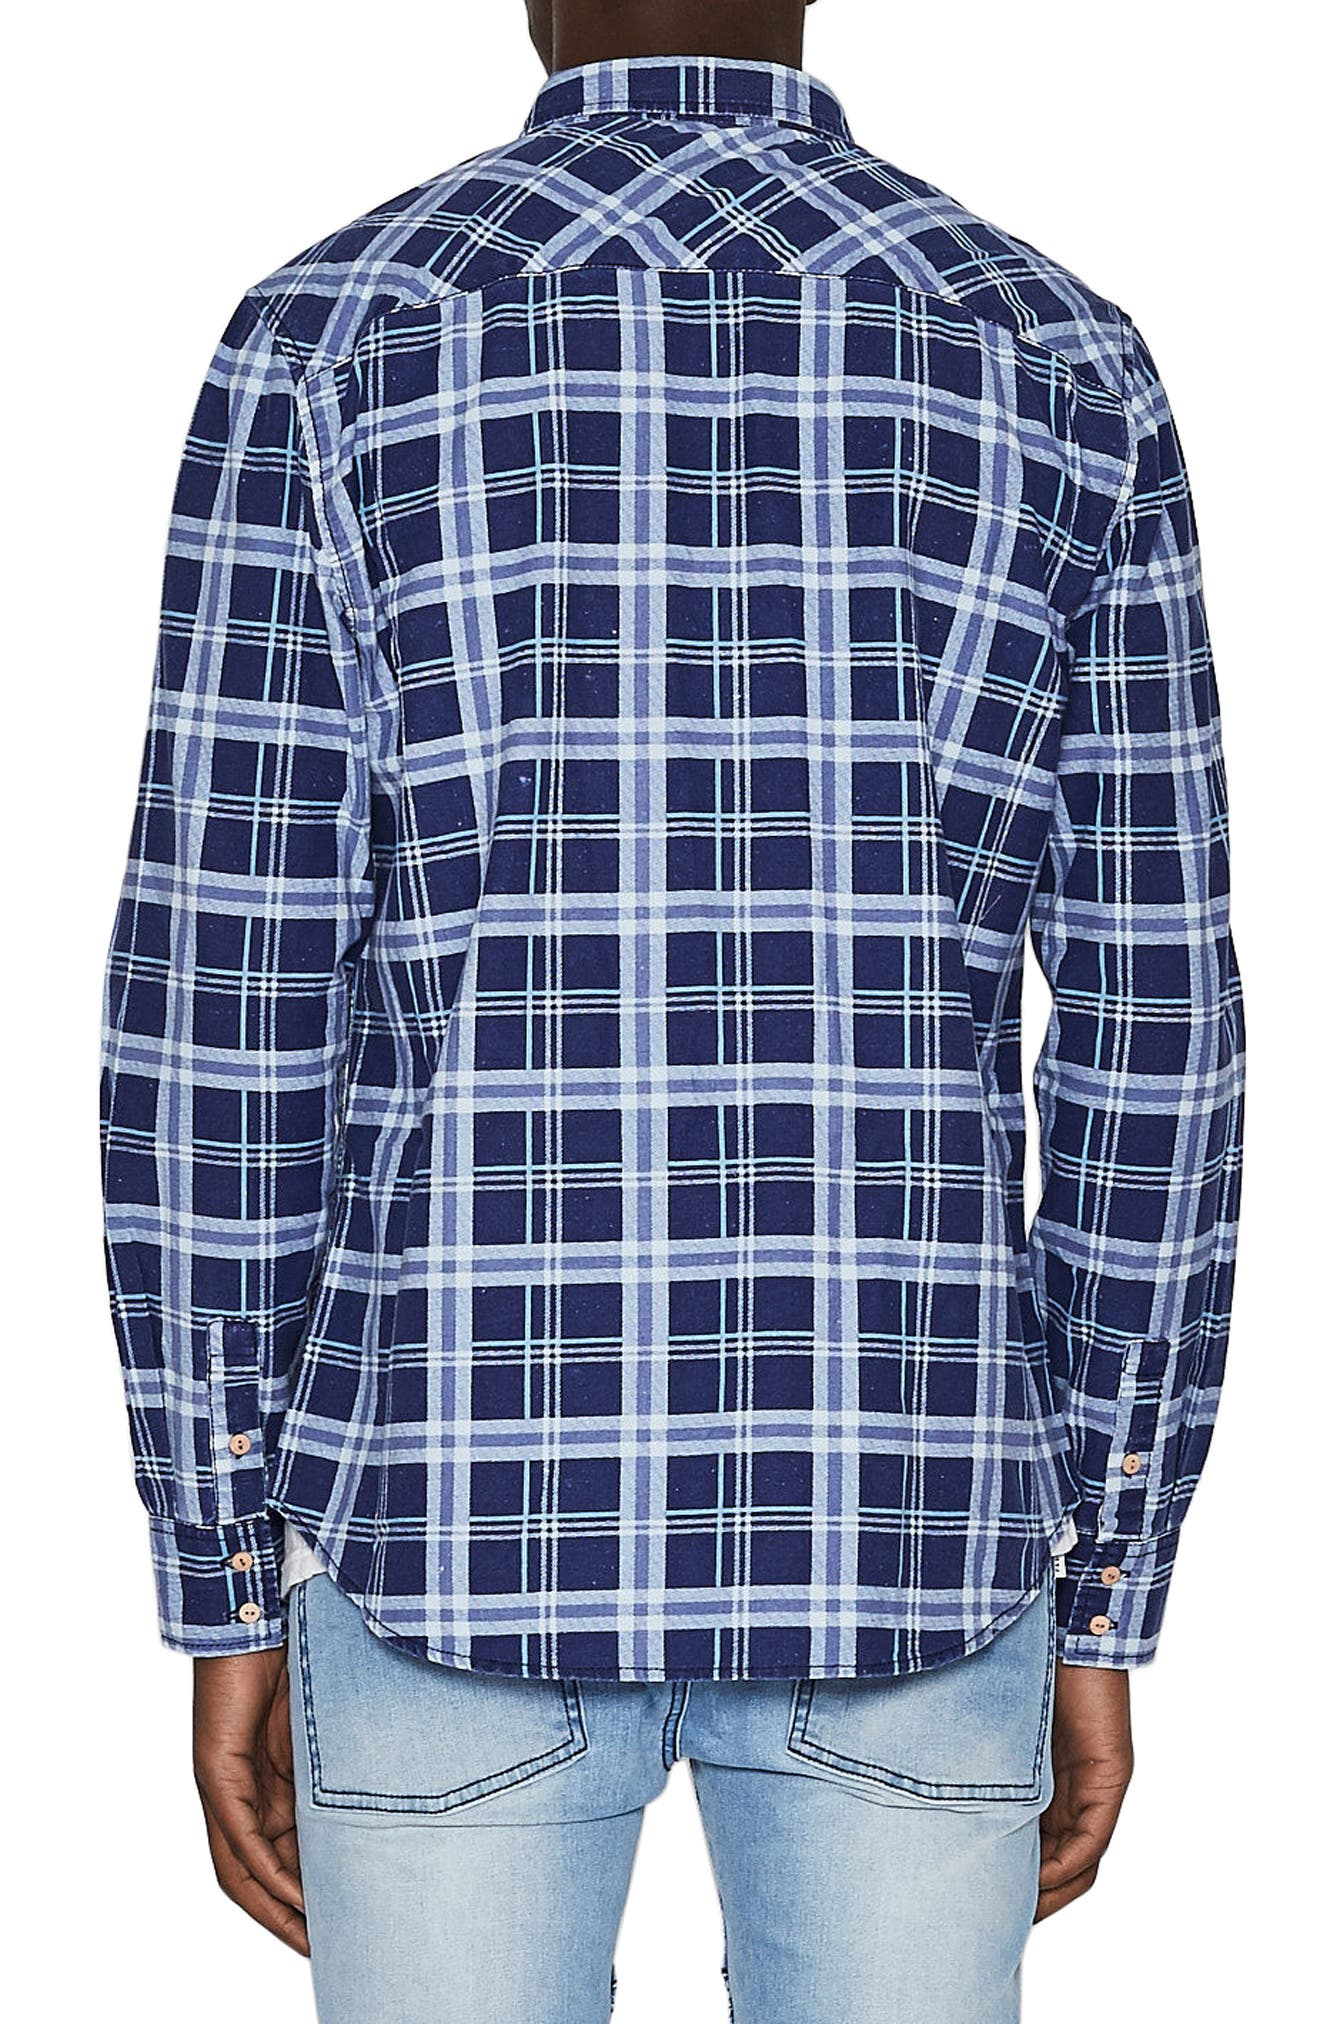 Issued Trim Fit Woven Shirt,                             Alternate thumbnail 2, color,                             Blue Check